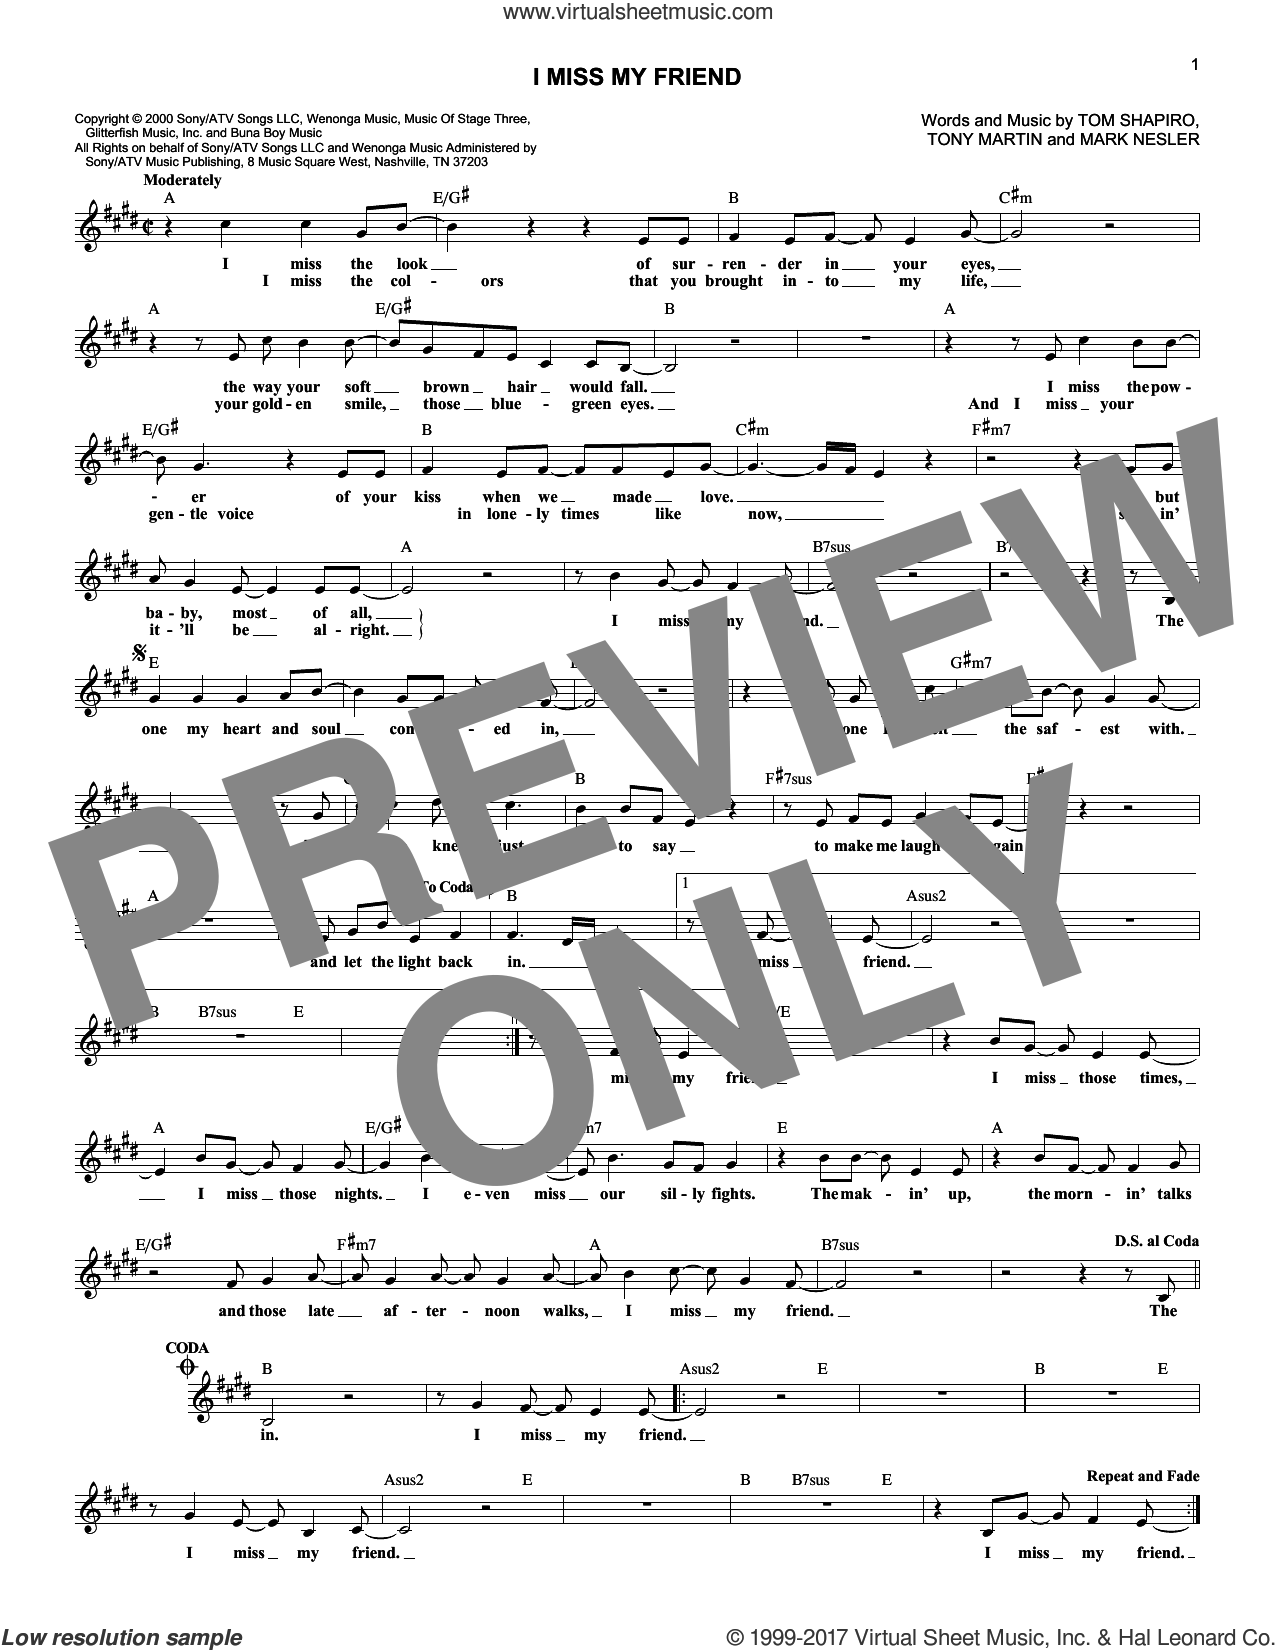 I Miss My Friend sheet music for voice and other instruments (fake book) by Tony Martin, Darryl Worley, Mark Nesler and Tom Shapiro. Score Image Preview.